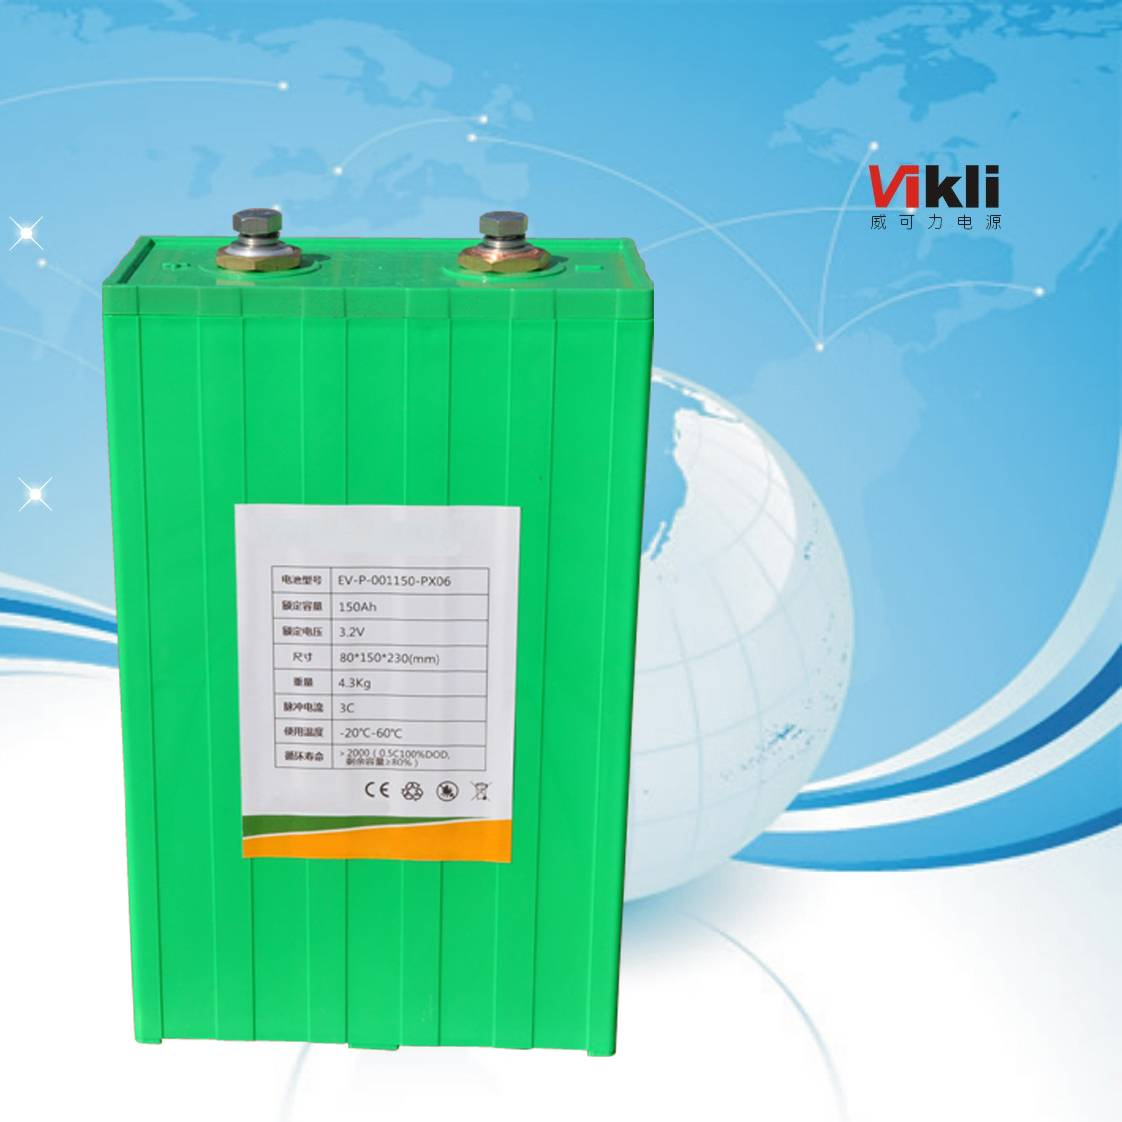 3.2V 150AH lithium iron phosphate battery , dynamic battery